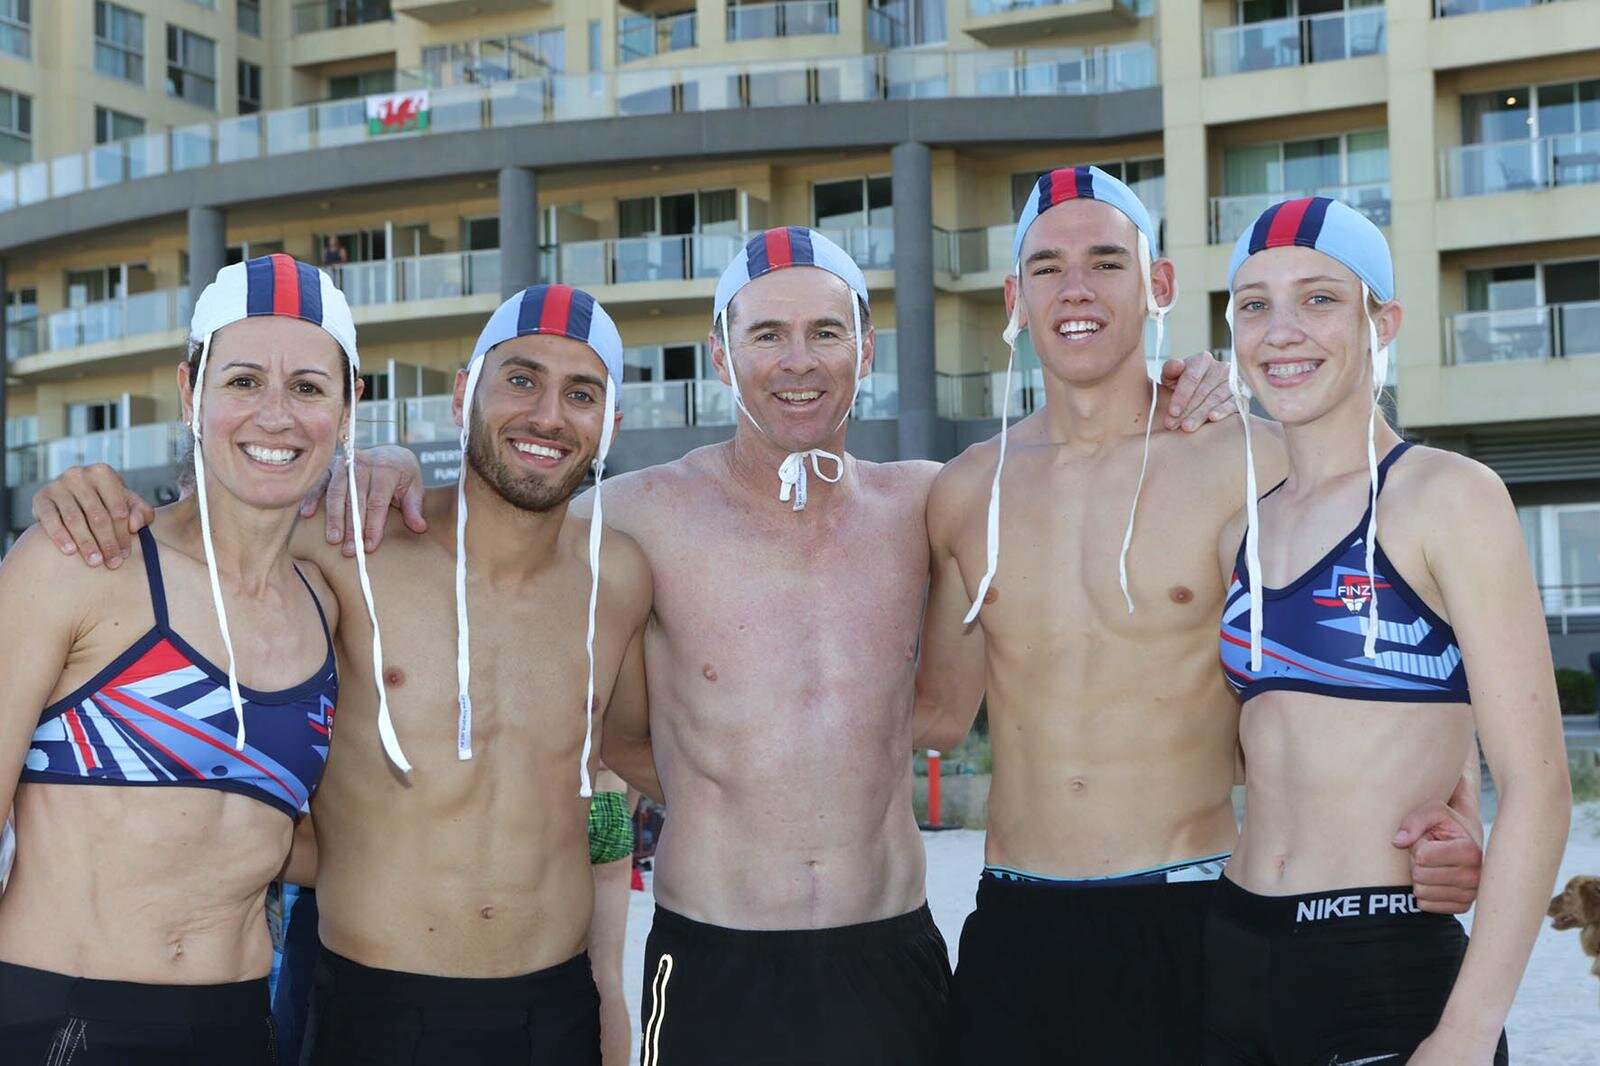 Jock with 4 of his World Champions from the 2018 Surf Lifesaving World Titles, where out of the 8 endurance running events staged for opens and youths, Jock's athletes won them all. A feat that has never been achieved before.